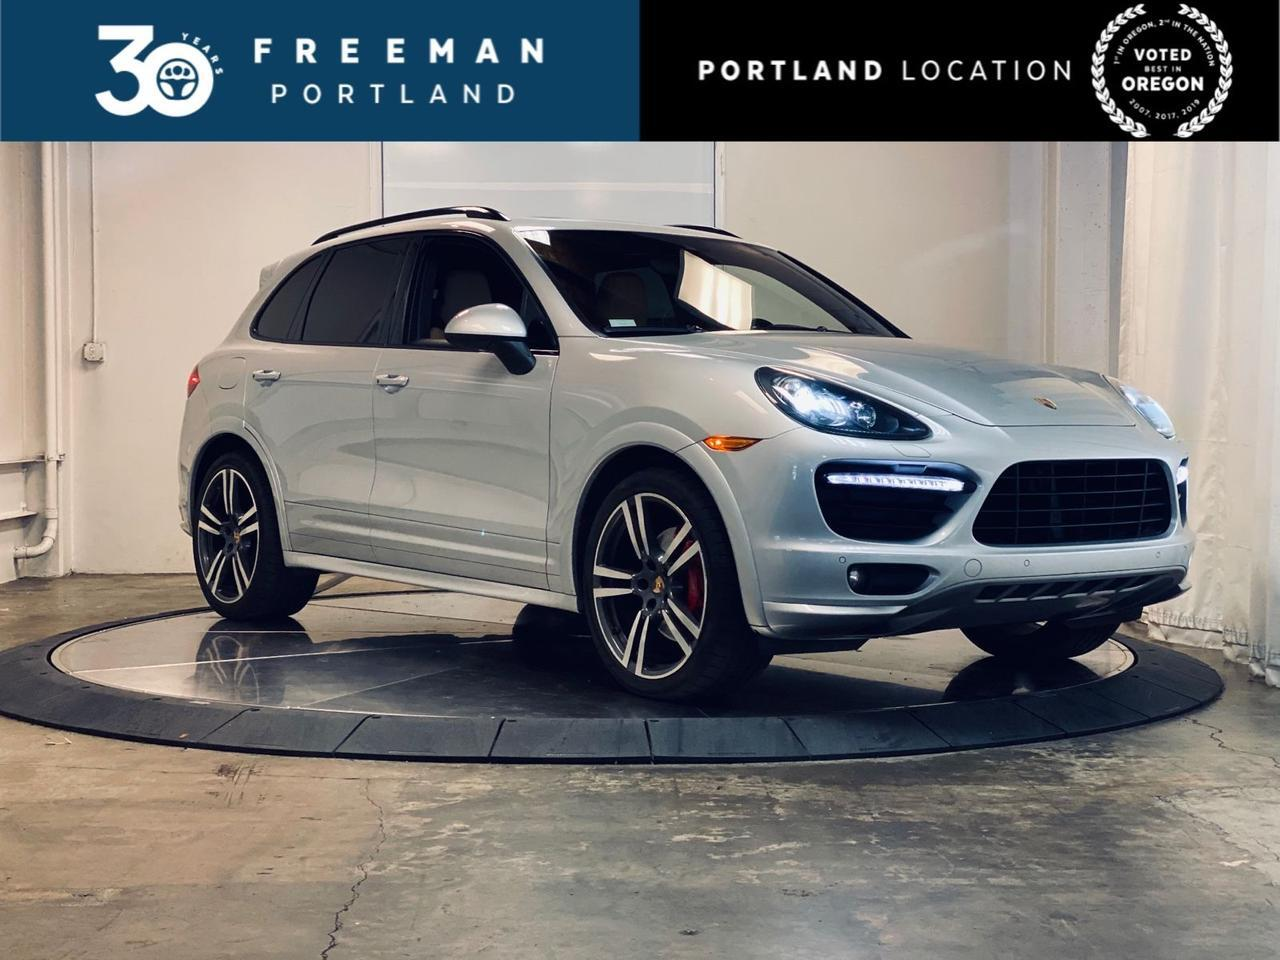 2014 Porsche Cayenne GTS V8 Ventilated Seats Backup Cam BOSE